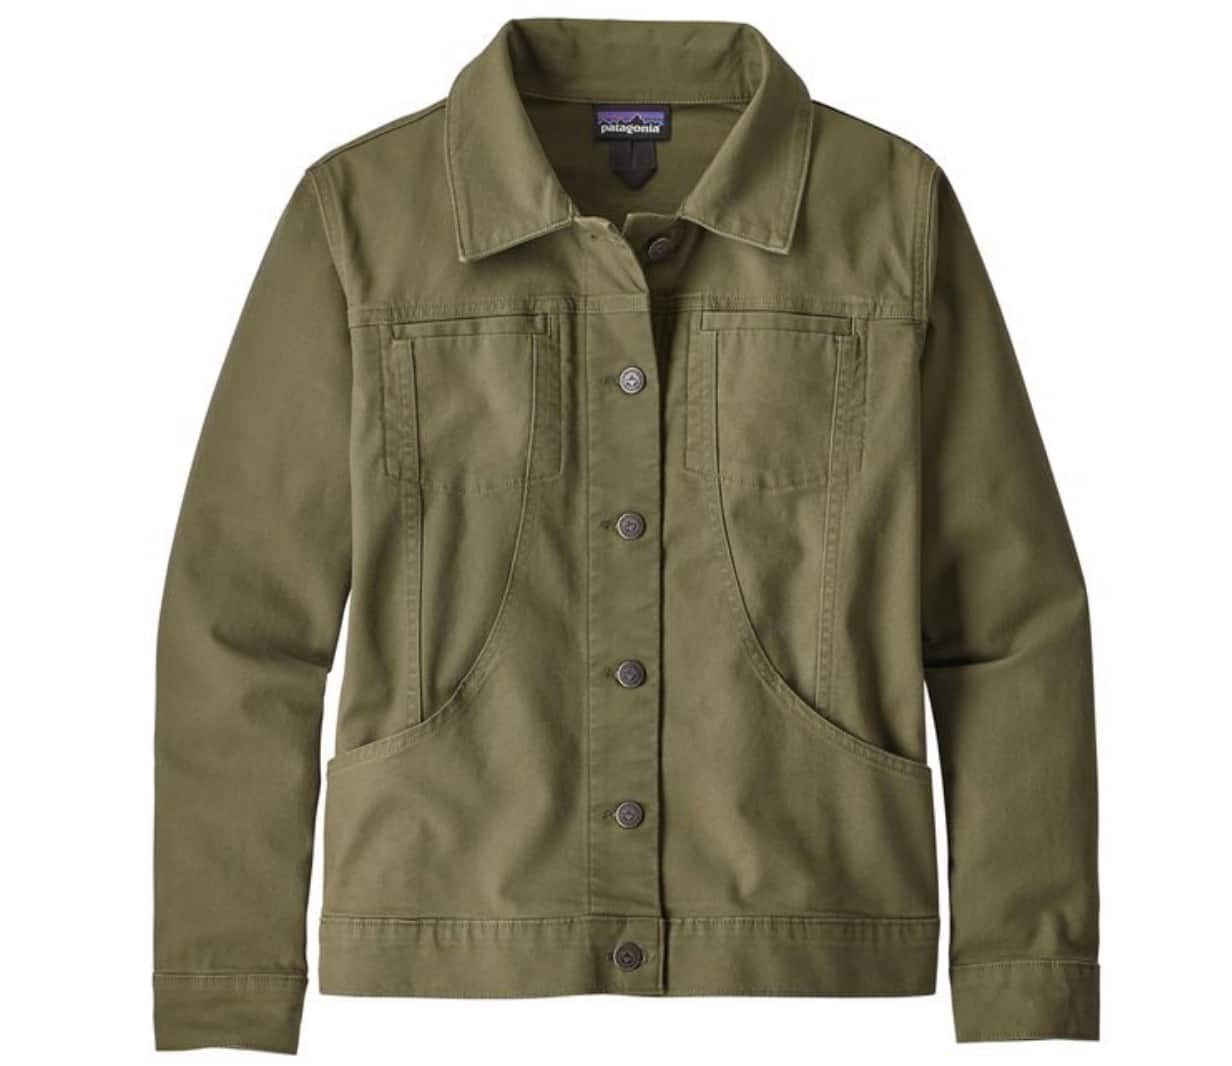 Patagonia Women's Stand Up™ Jacket